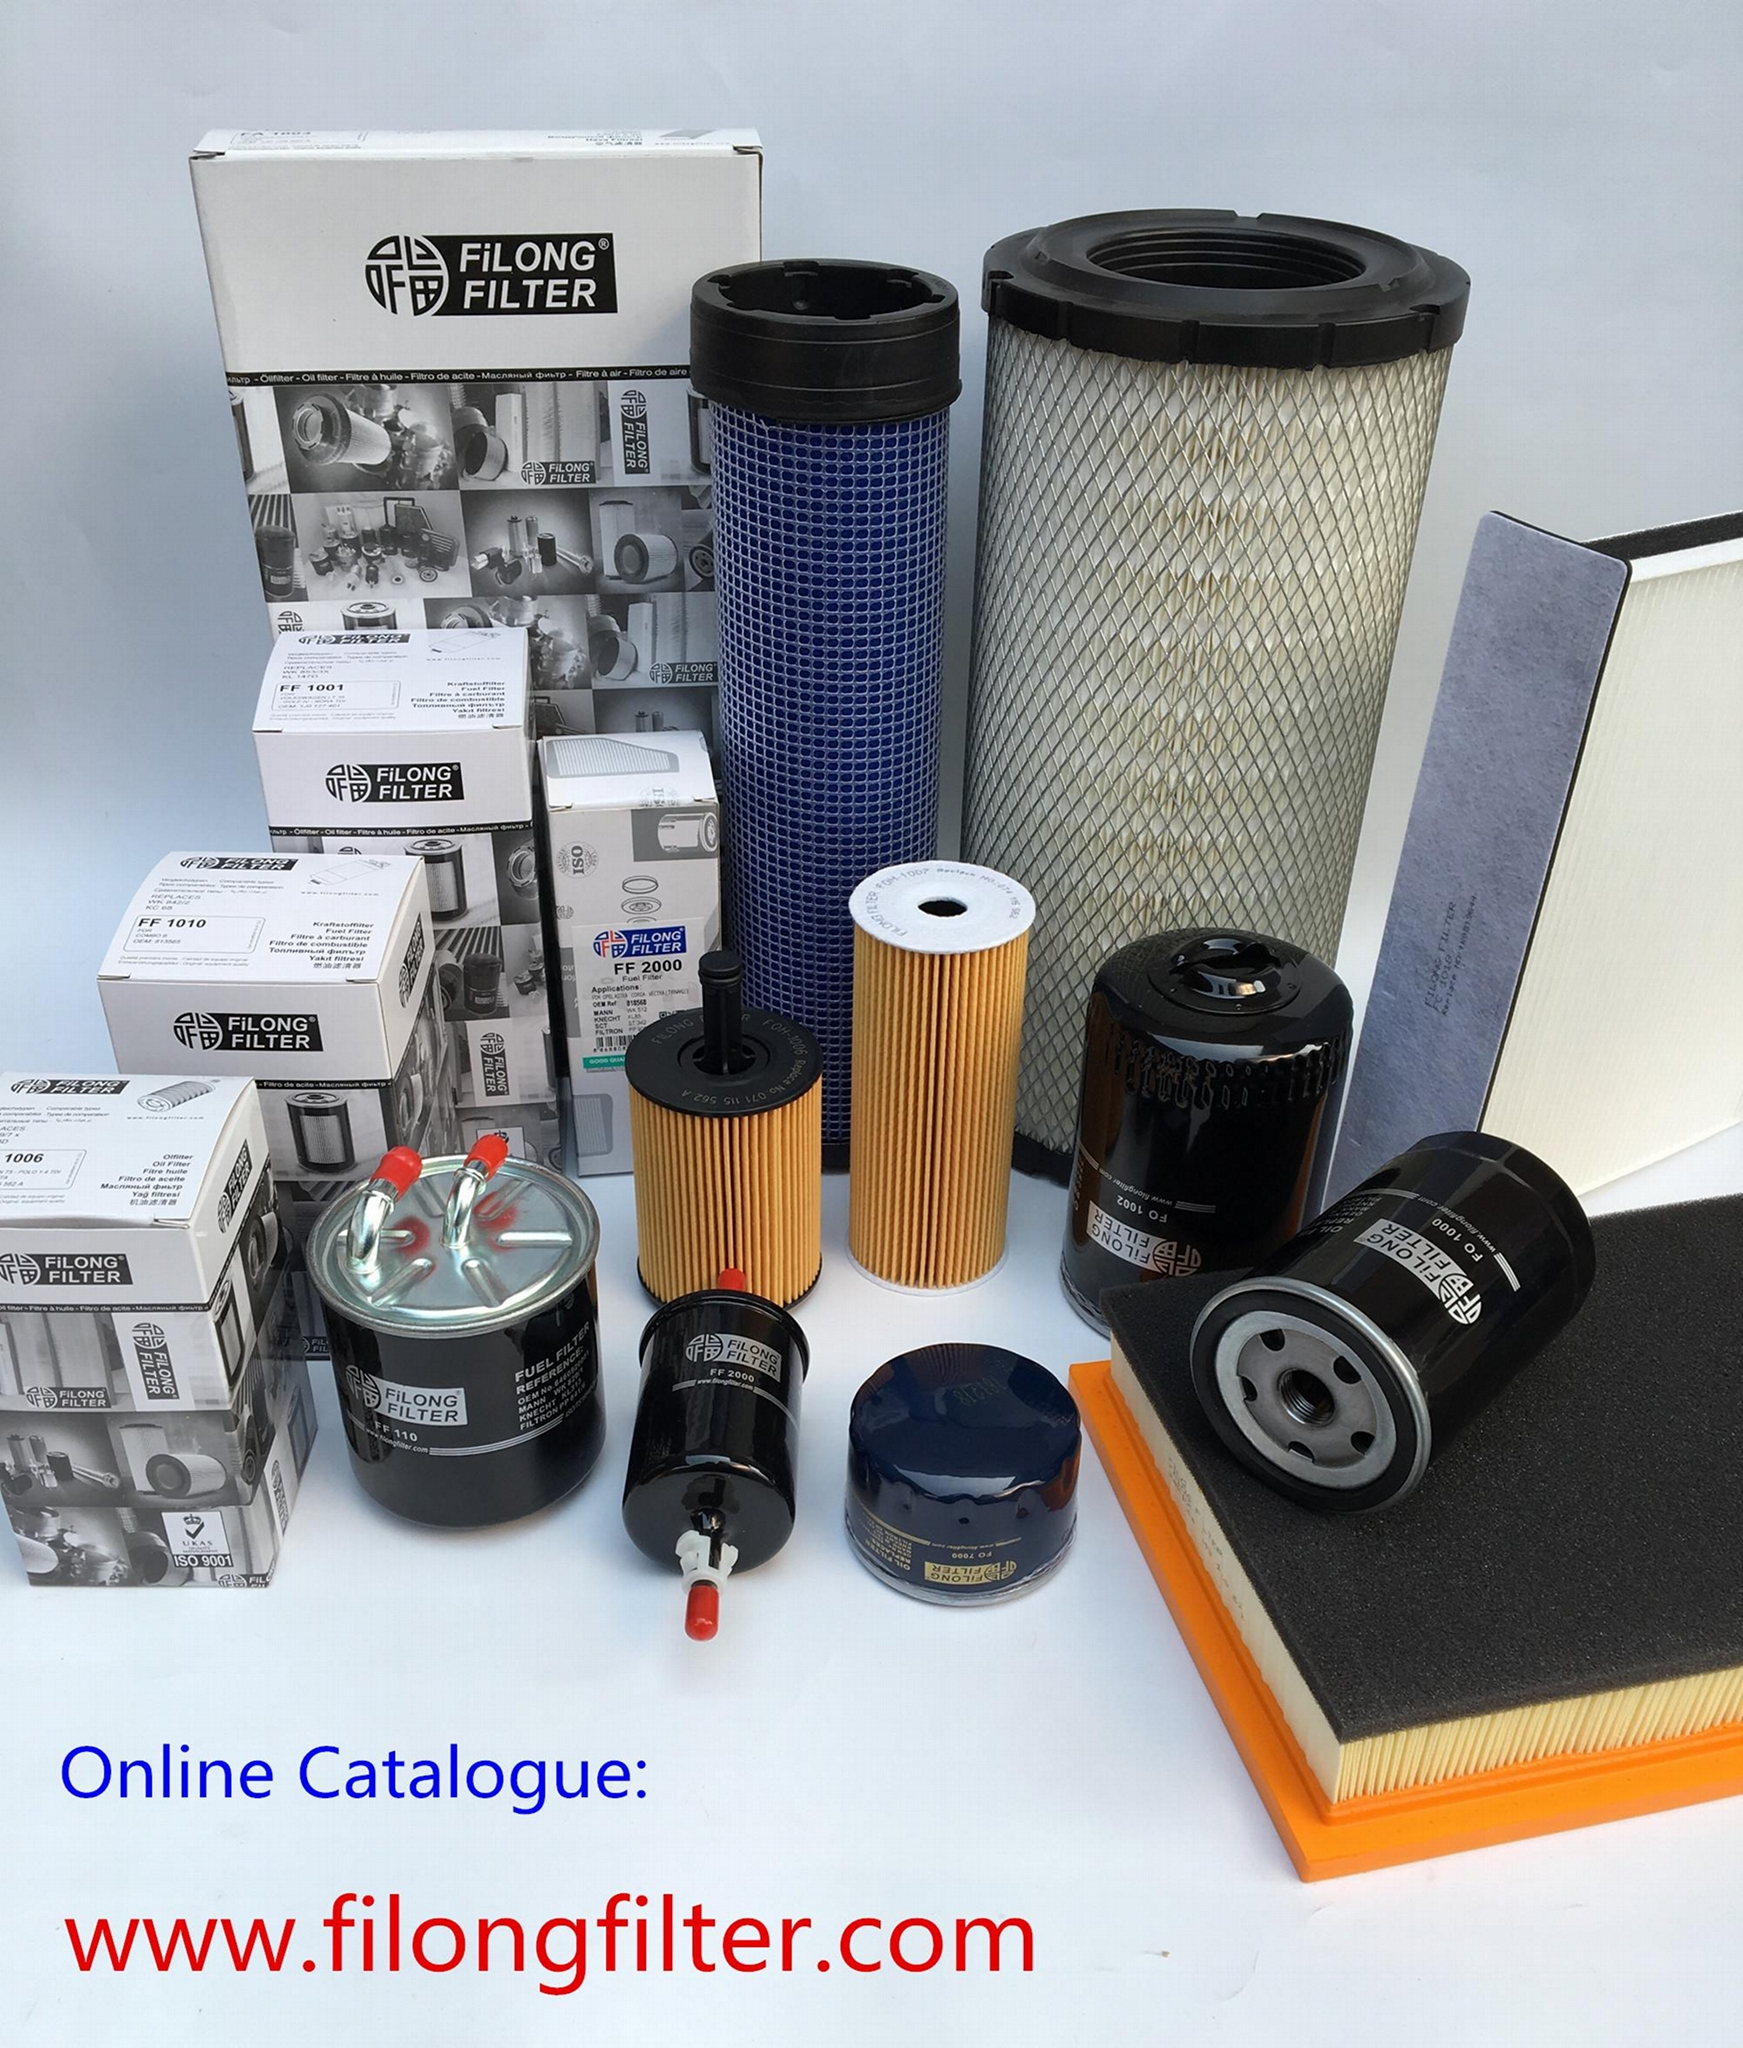 FILONG manufacturer high quality Hot Selling Fuel filter FFH-9021 11811-NY025 21535312 8-97385919-0 ME354459 S1222-EV040